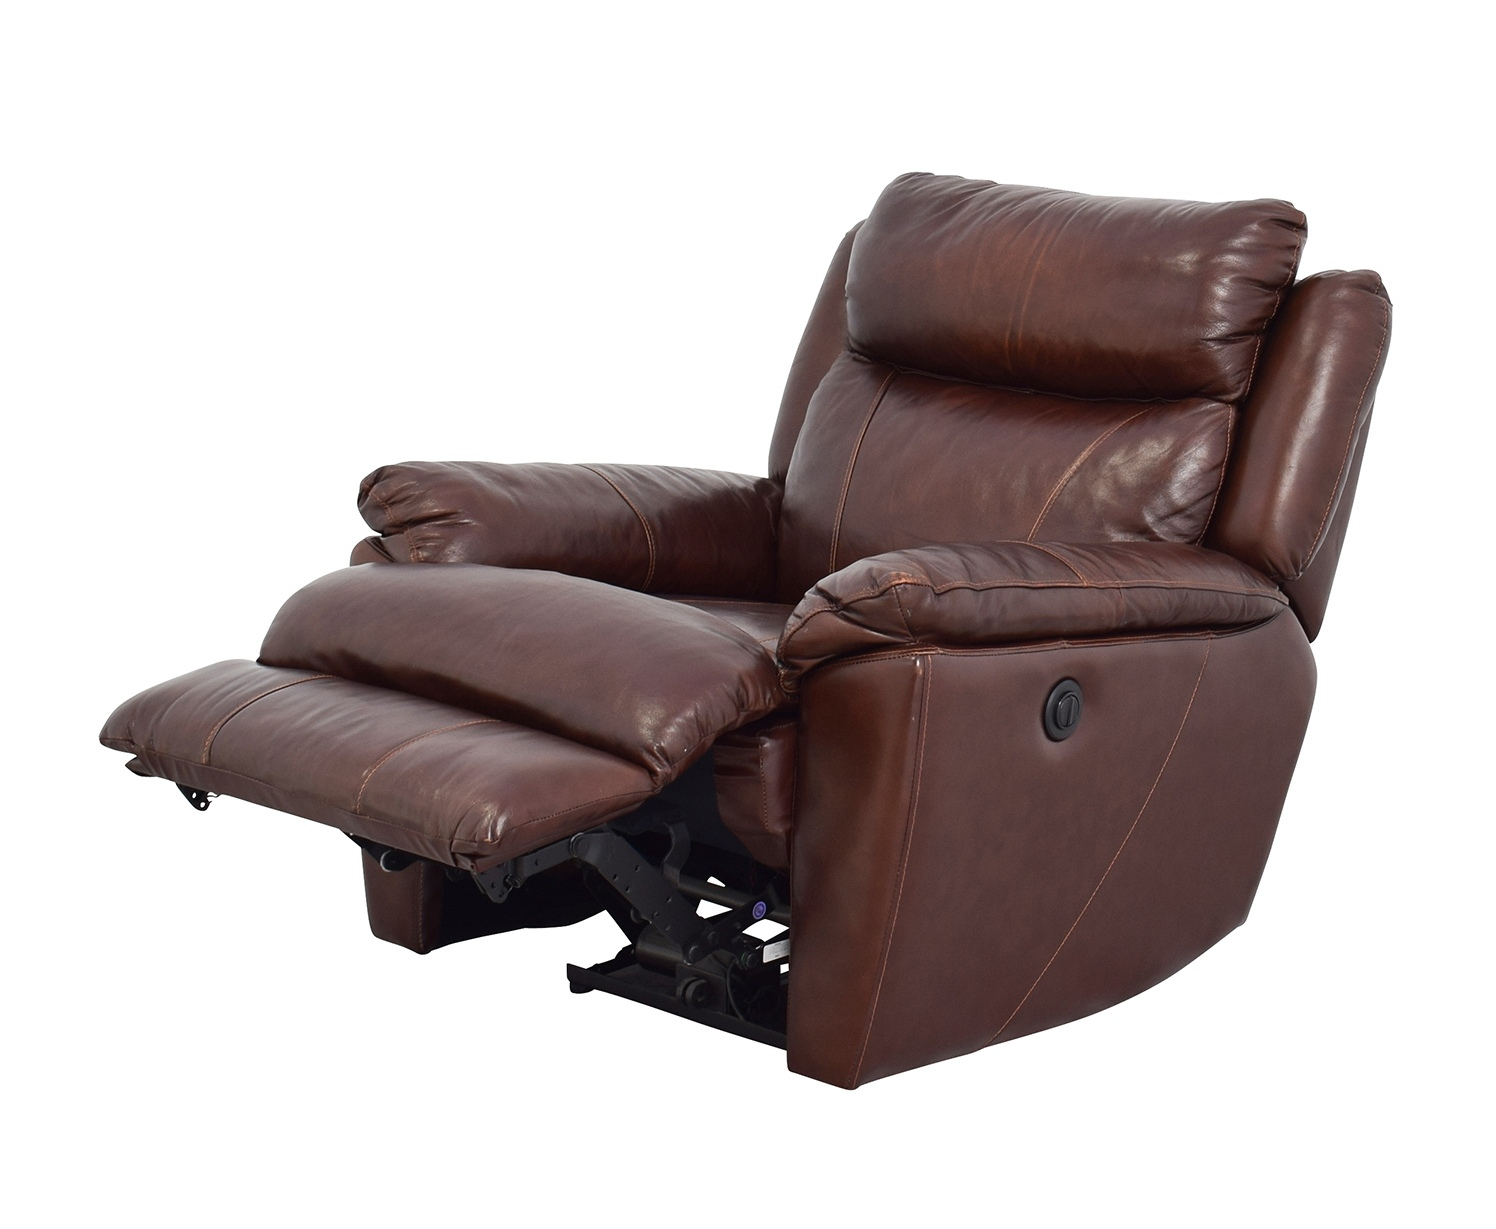 Macys Leather Chair Brown Macys Leather Chair Recliner